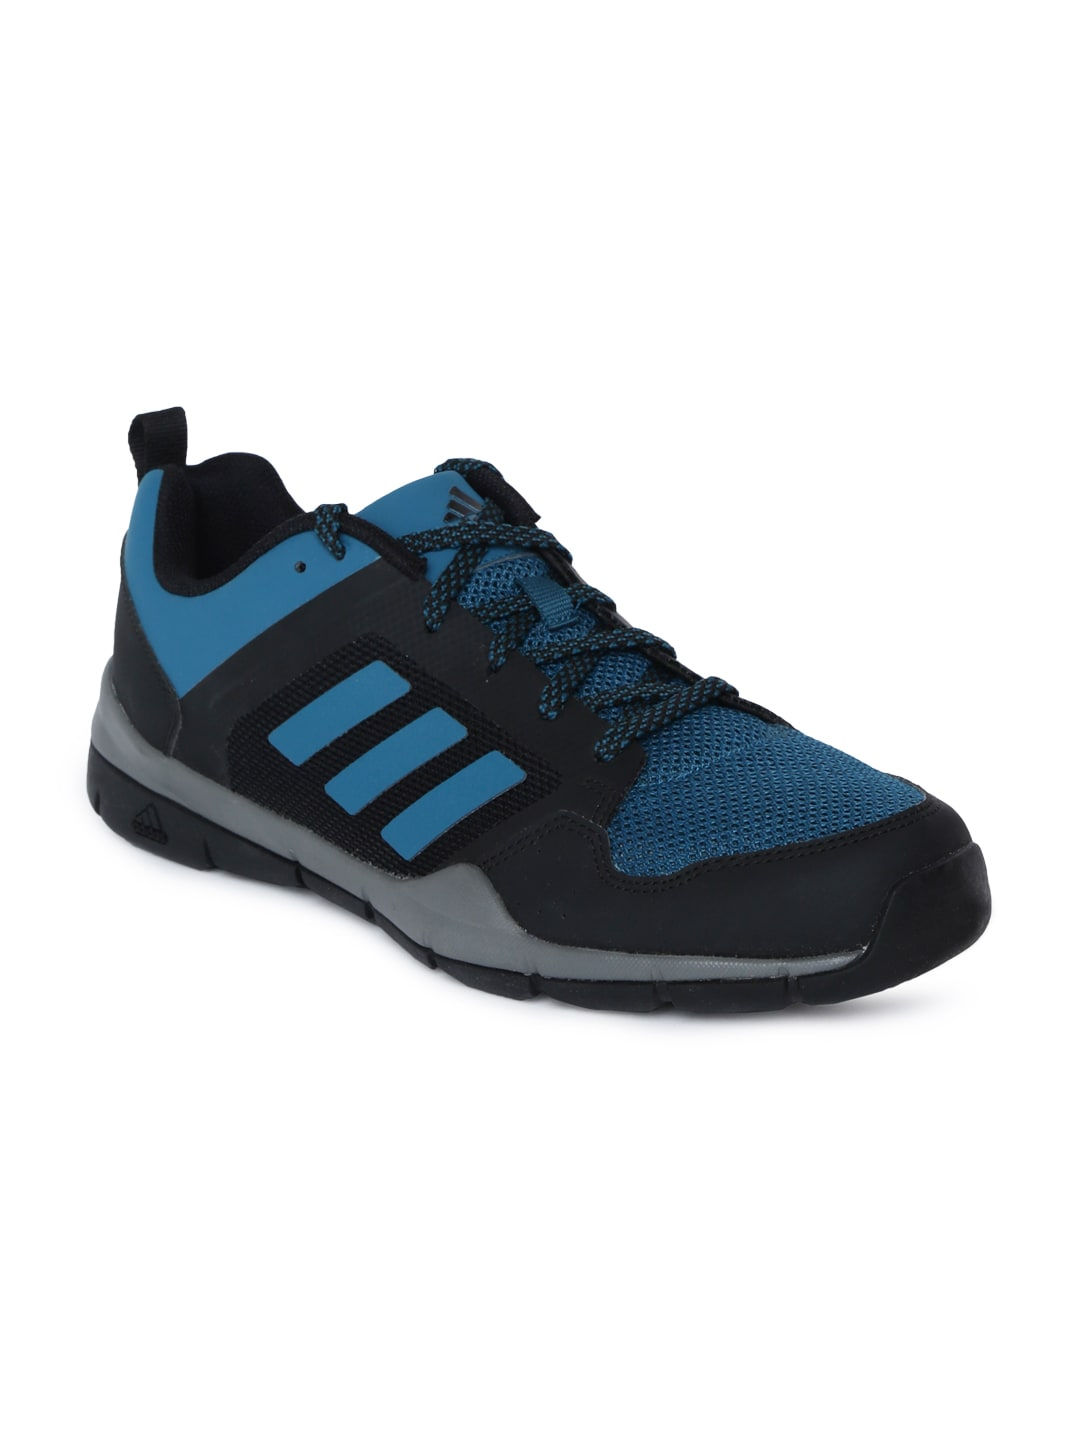 4e02efbf2 Adidas Shoes Scarves Tights - Buy Adidas Shoes Scarves Tights online in  India